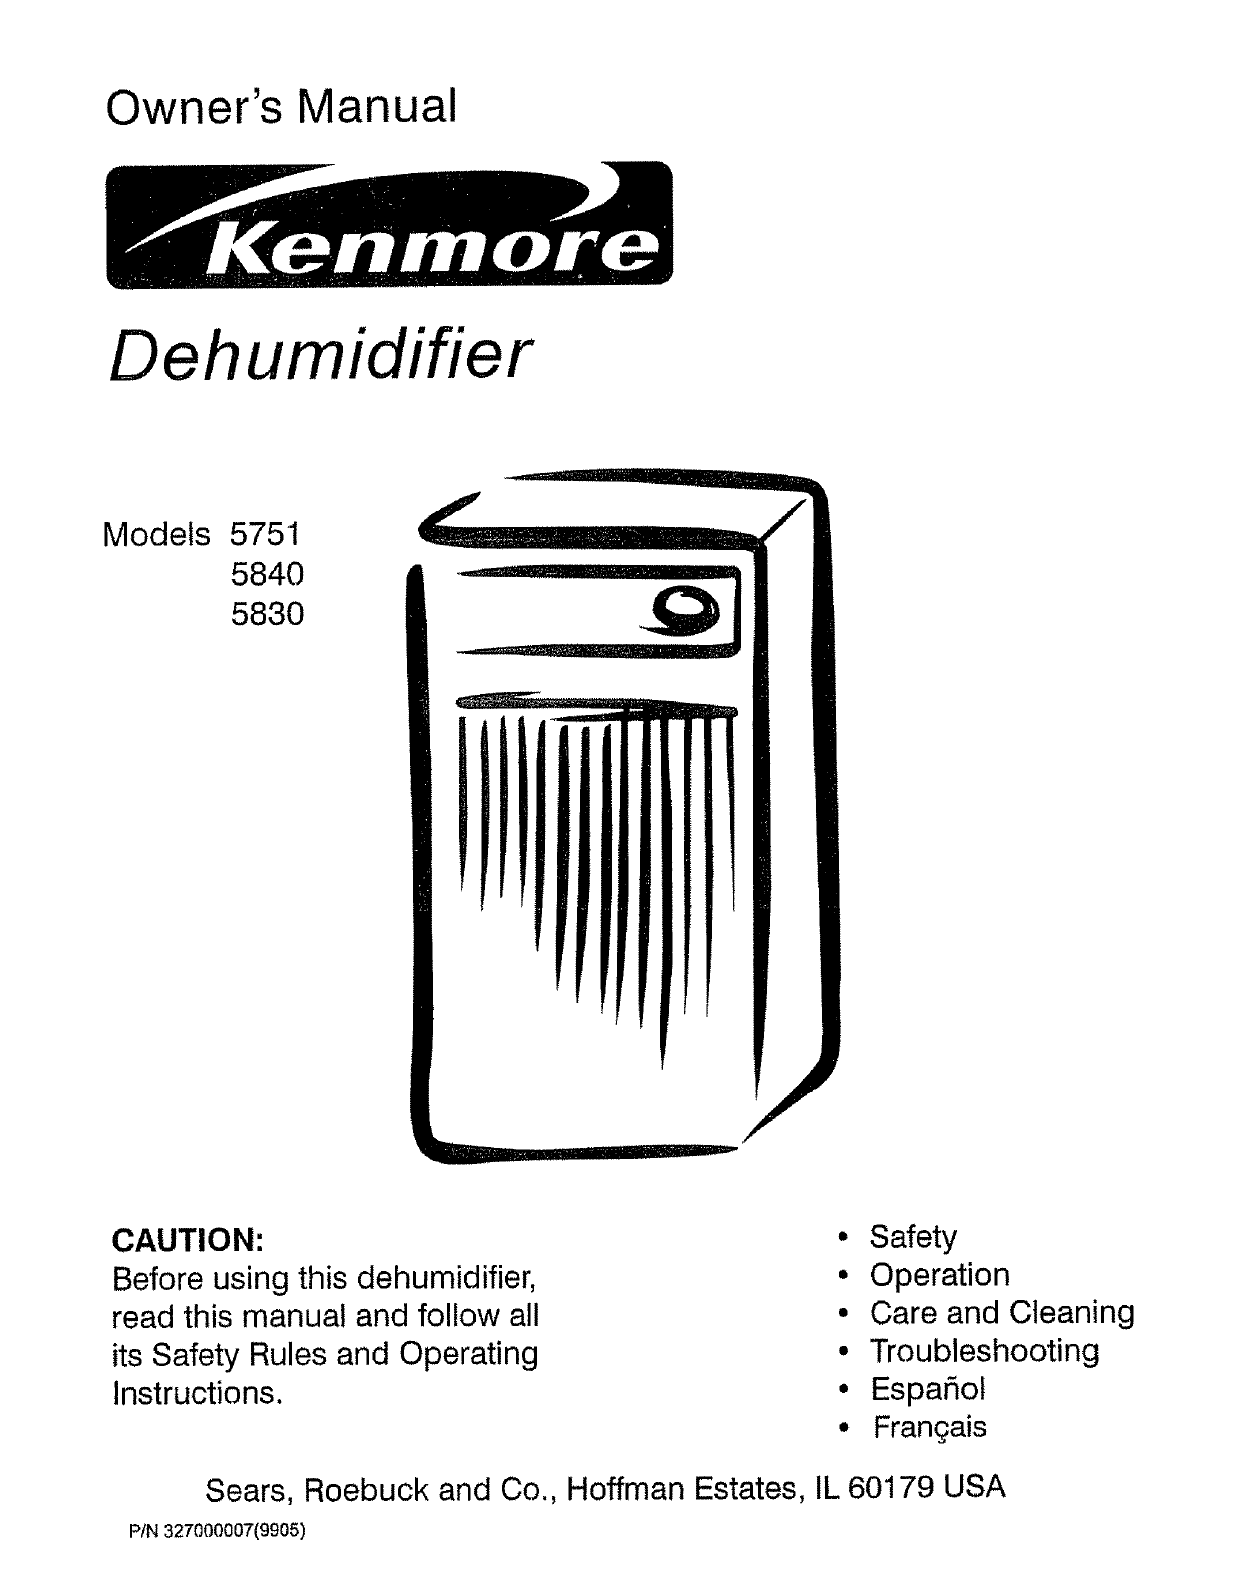 Download Kenmore Dehumidifier 5751 manual and user guides